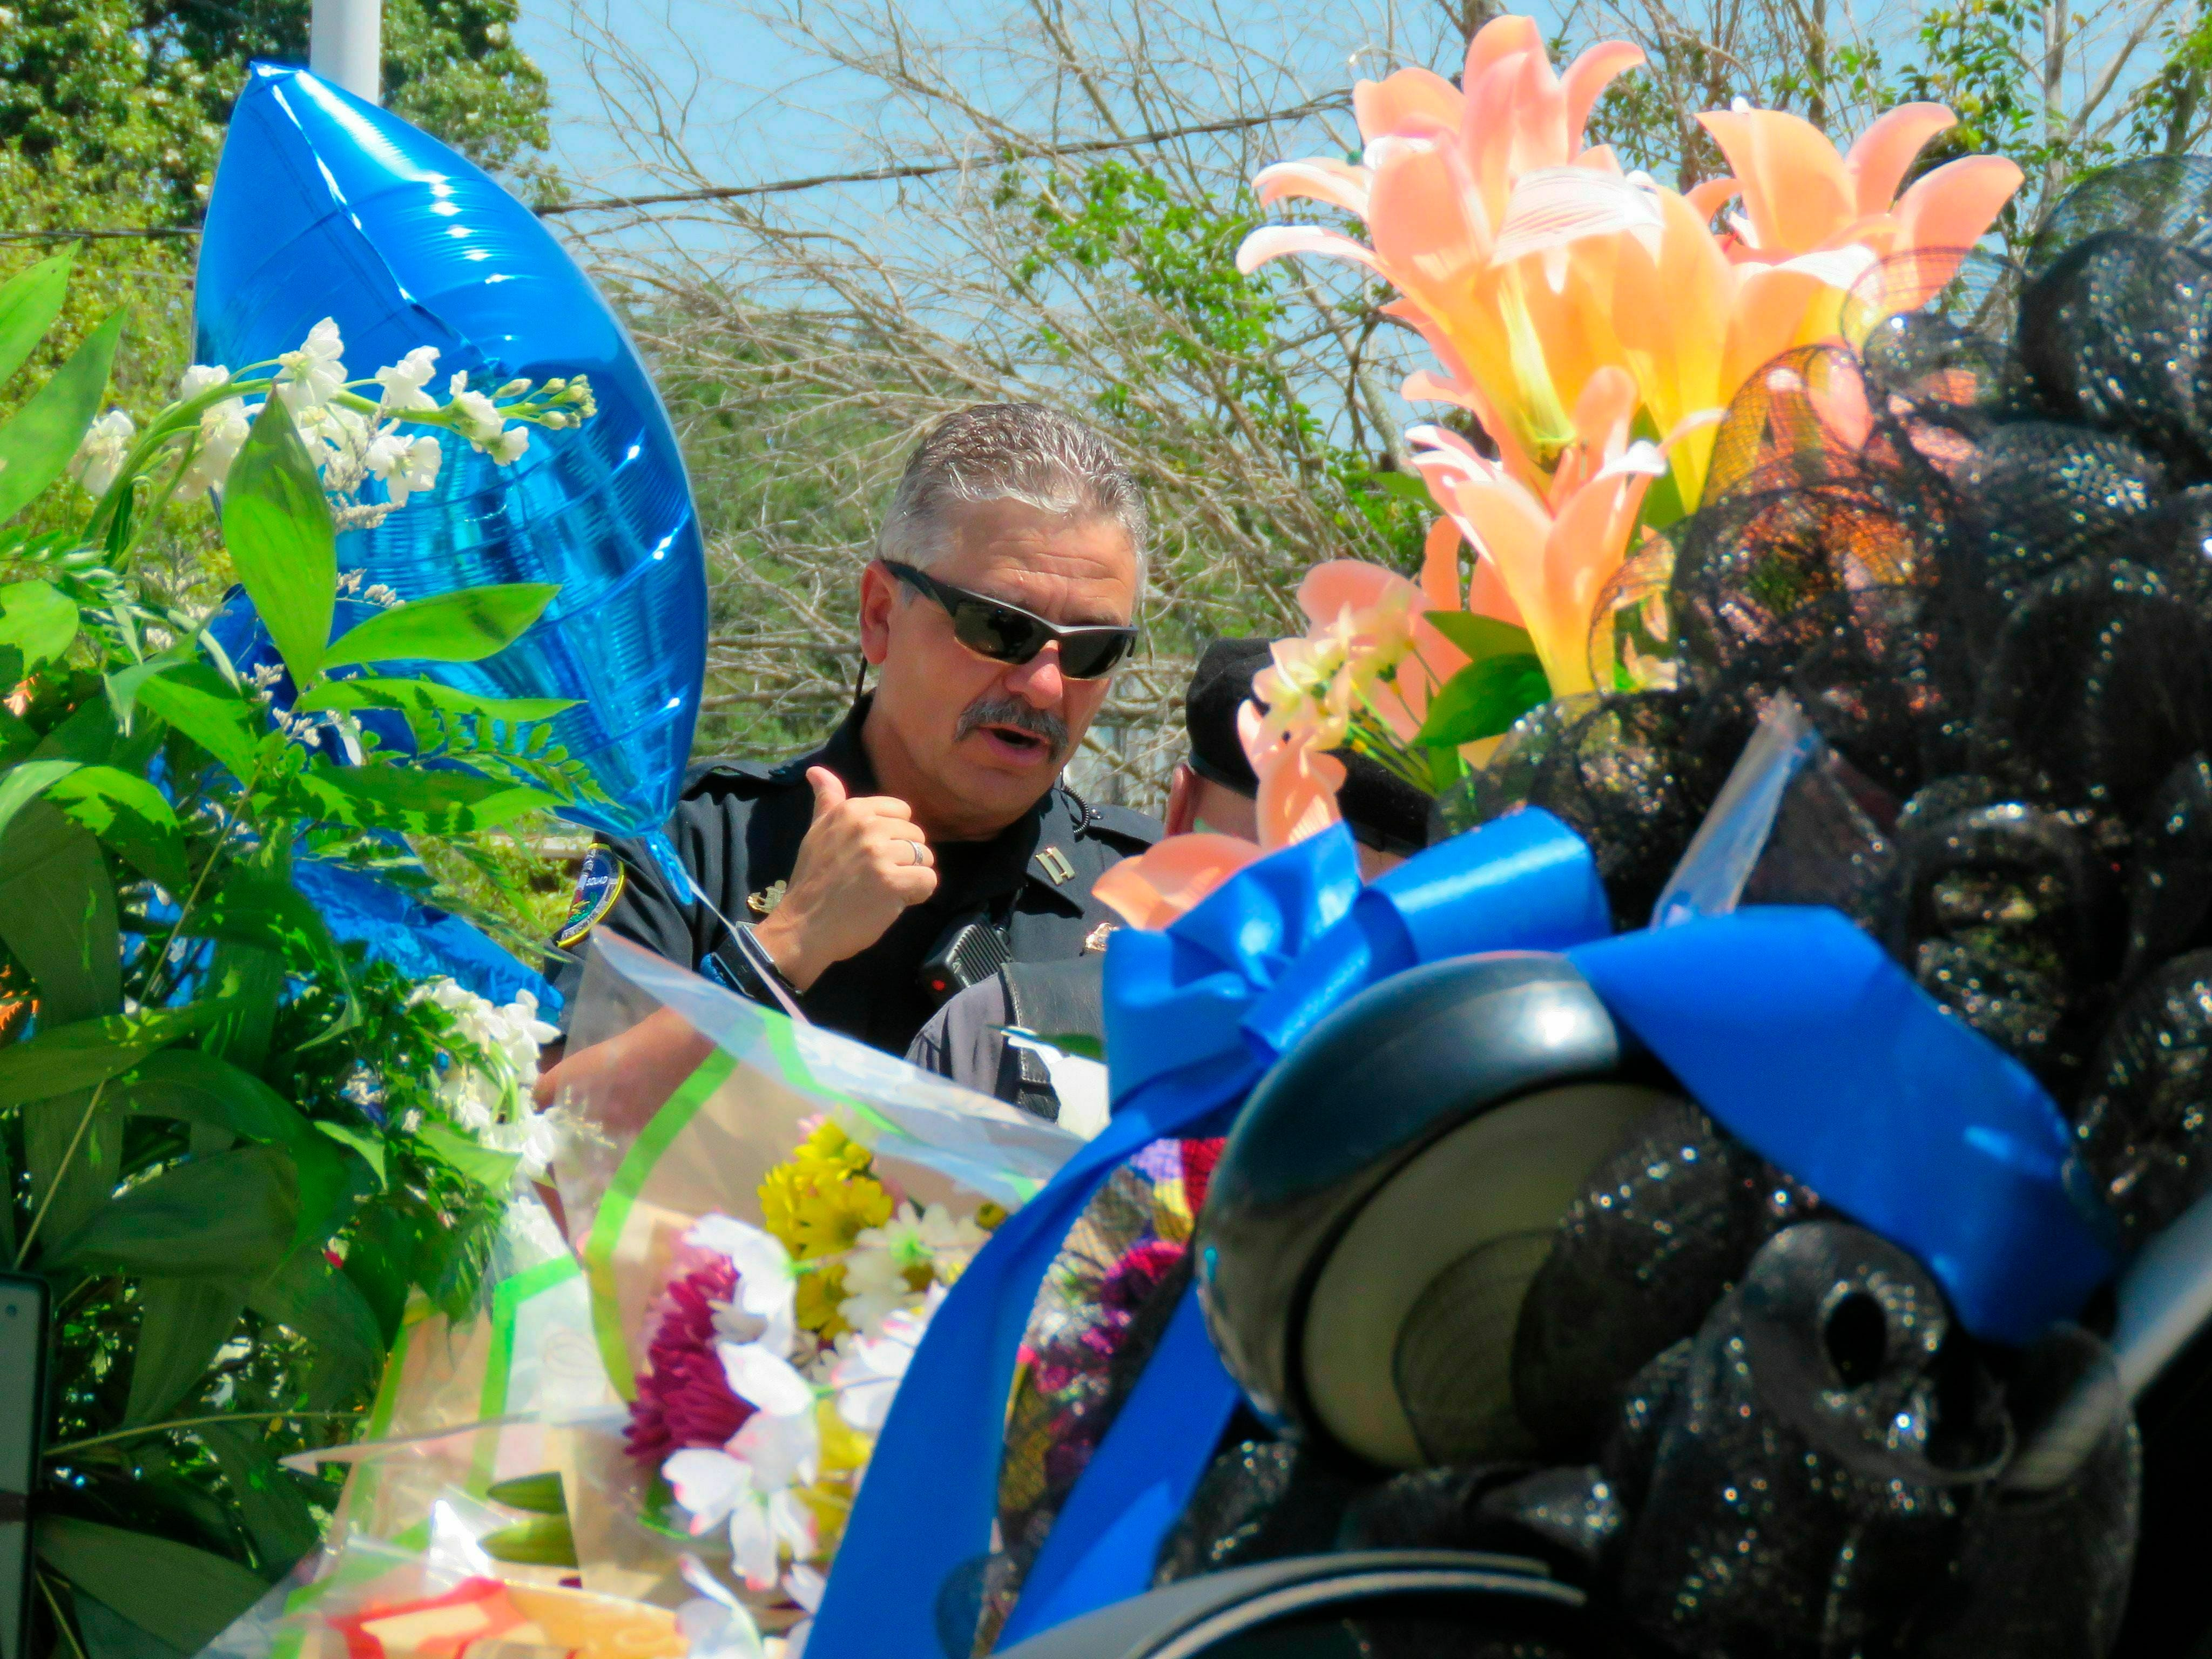 A Biloxi police vehicle that was assigned to patrolman Robert McKeithen is covered in flowers as Biloxi Police Capt. Milton Houseman, rear, talks , with a member of the Combat Veterans Motorcycle Association, Tuesday, May 7, 2019, in Biloxi, Miss. Houseman said he was one of the officers who brought Darian Tawan Atkinson, 19, to Biloxi after his arrest in Wiggins on May 6, in the death of Patrolman McKeithen.